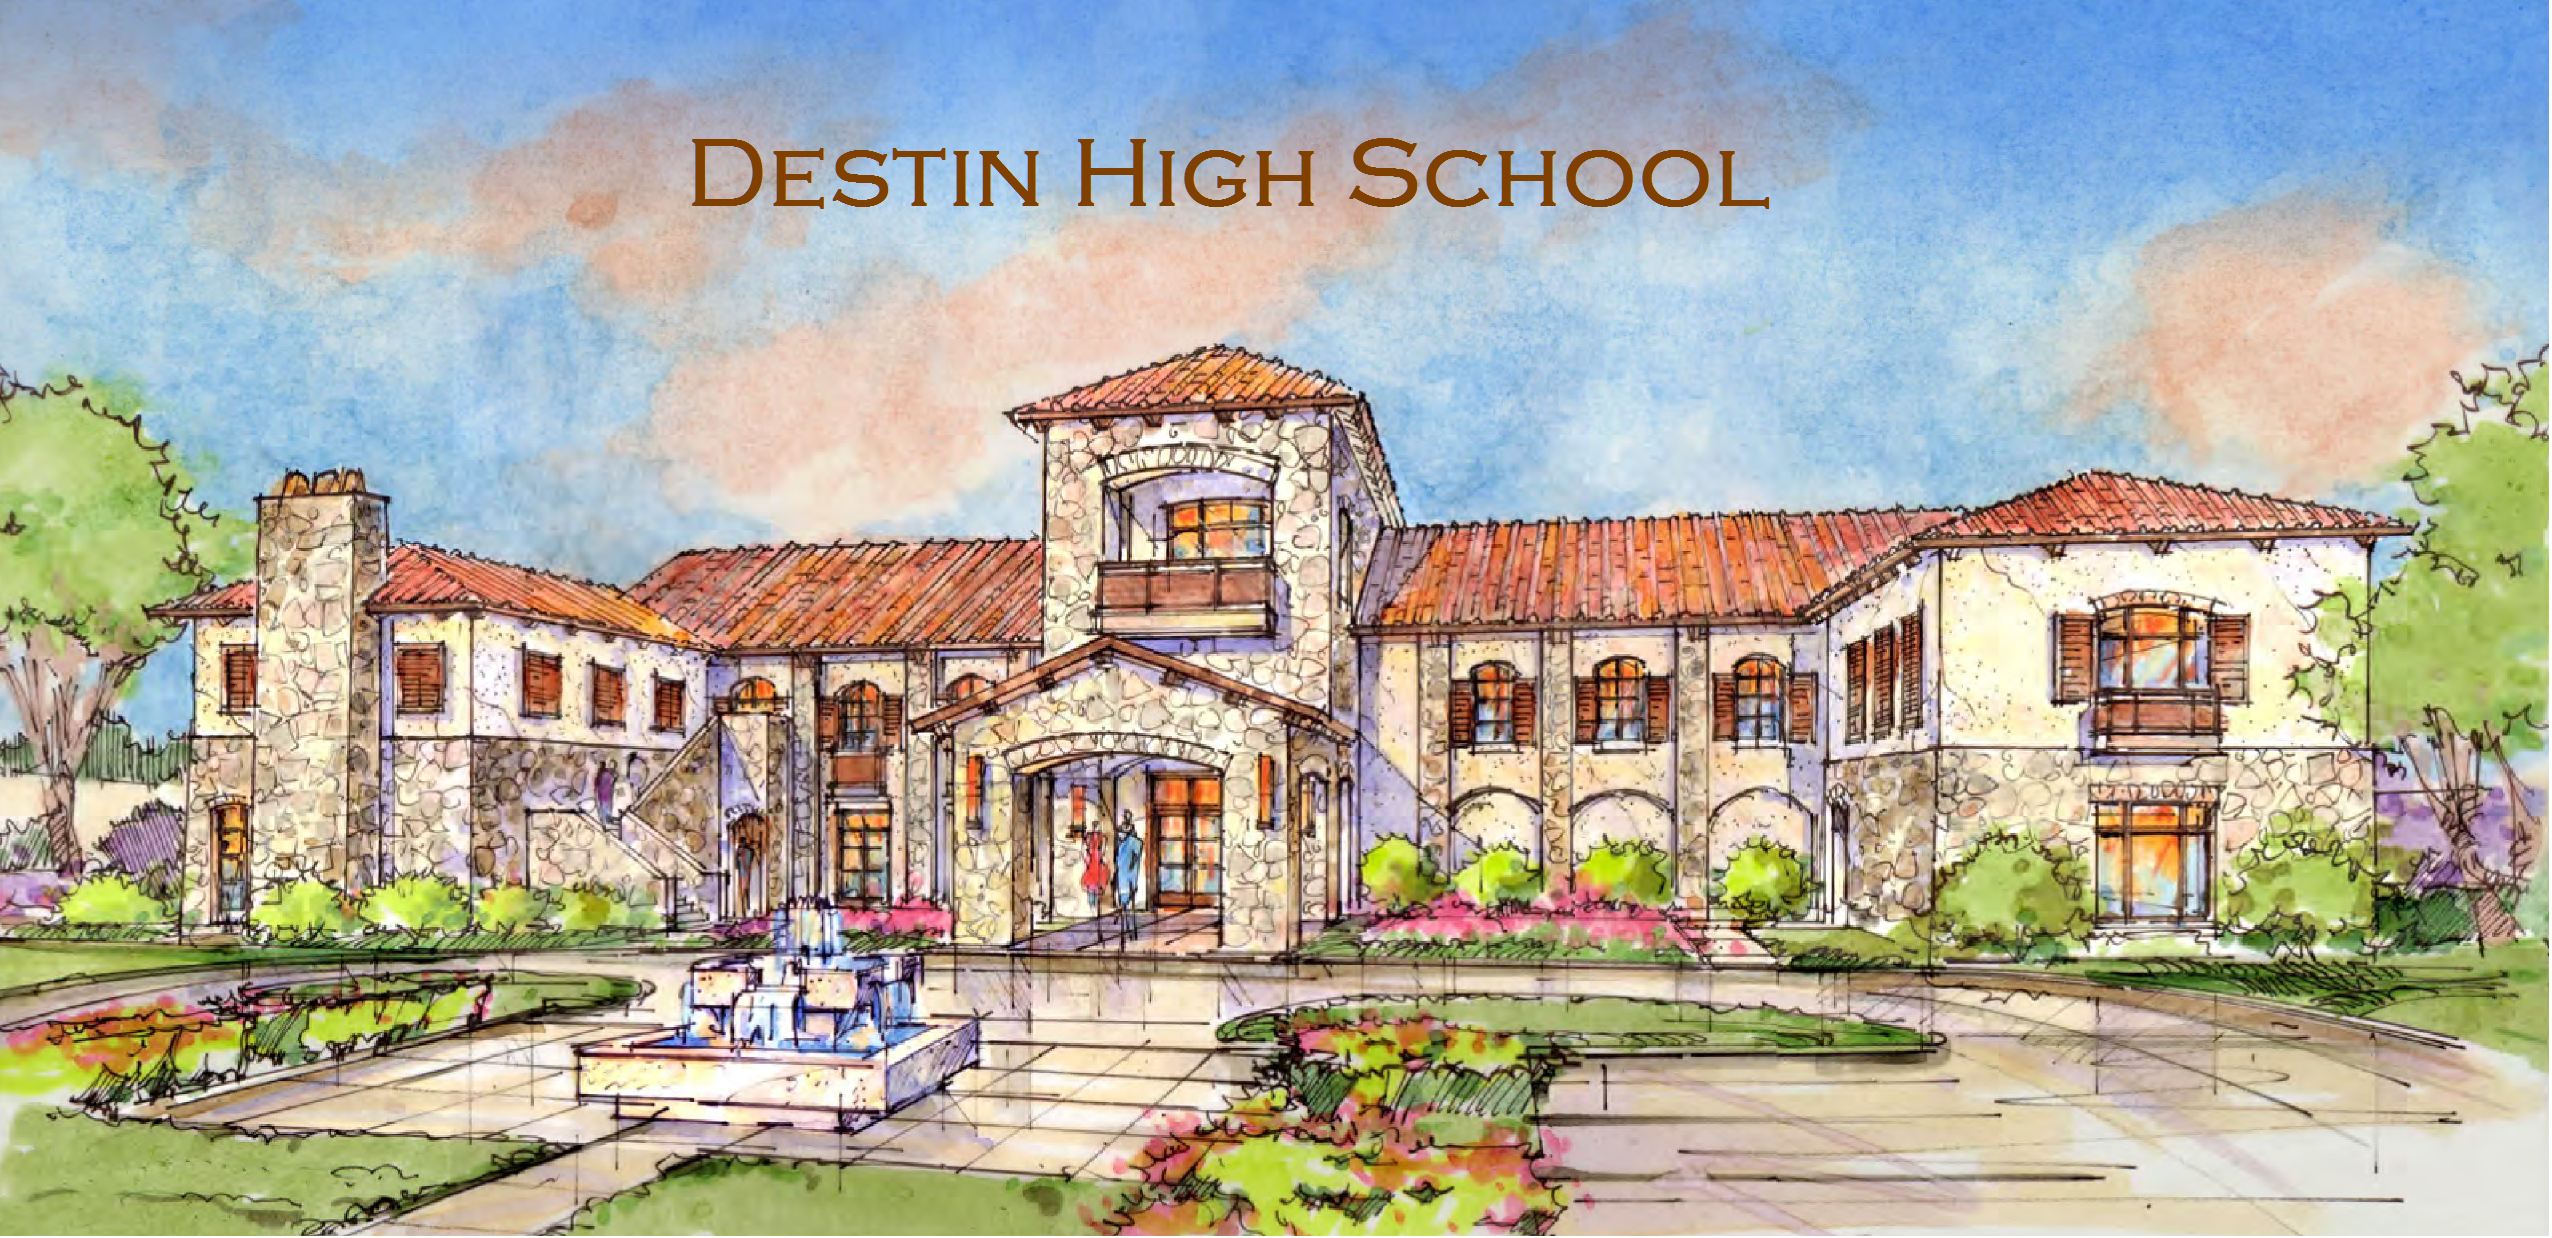 A rendering of future Destin High